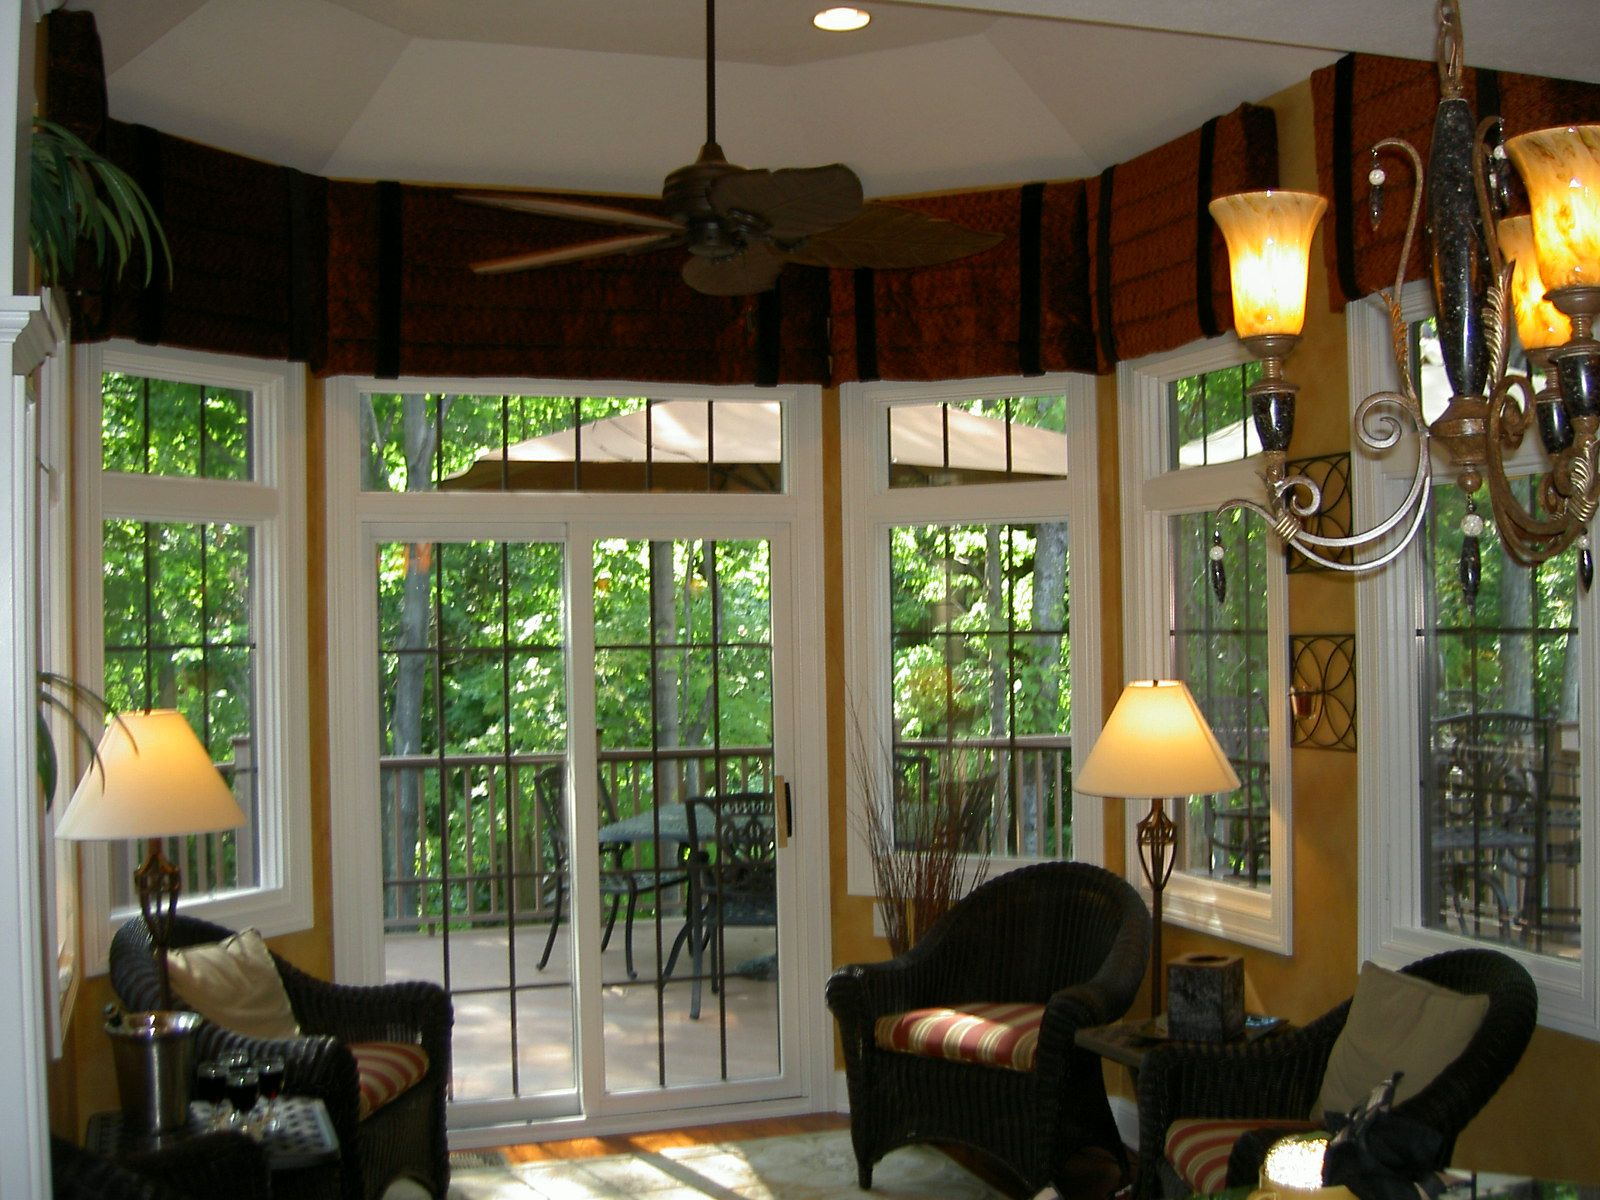 window treatments in model homes window treatment dining room latina model home homerama. Black Bedroom Furniture Sets. Home Design Ideas